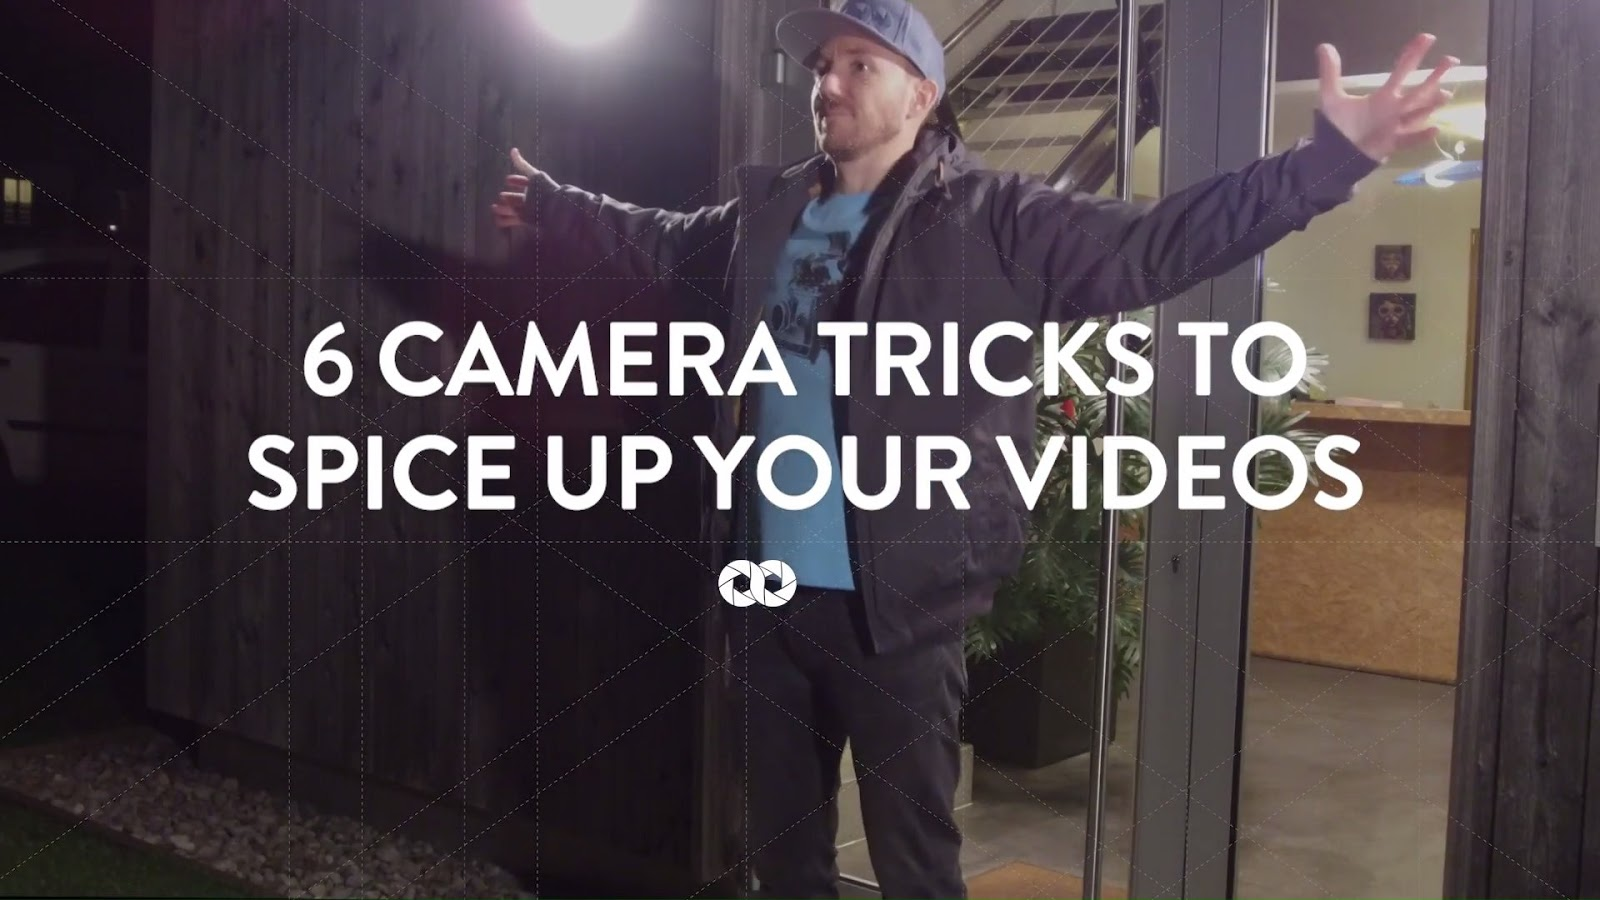 6 camera tricks to spice up your videos